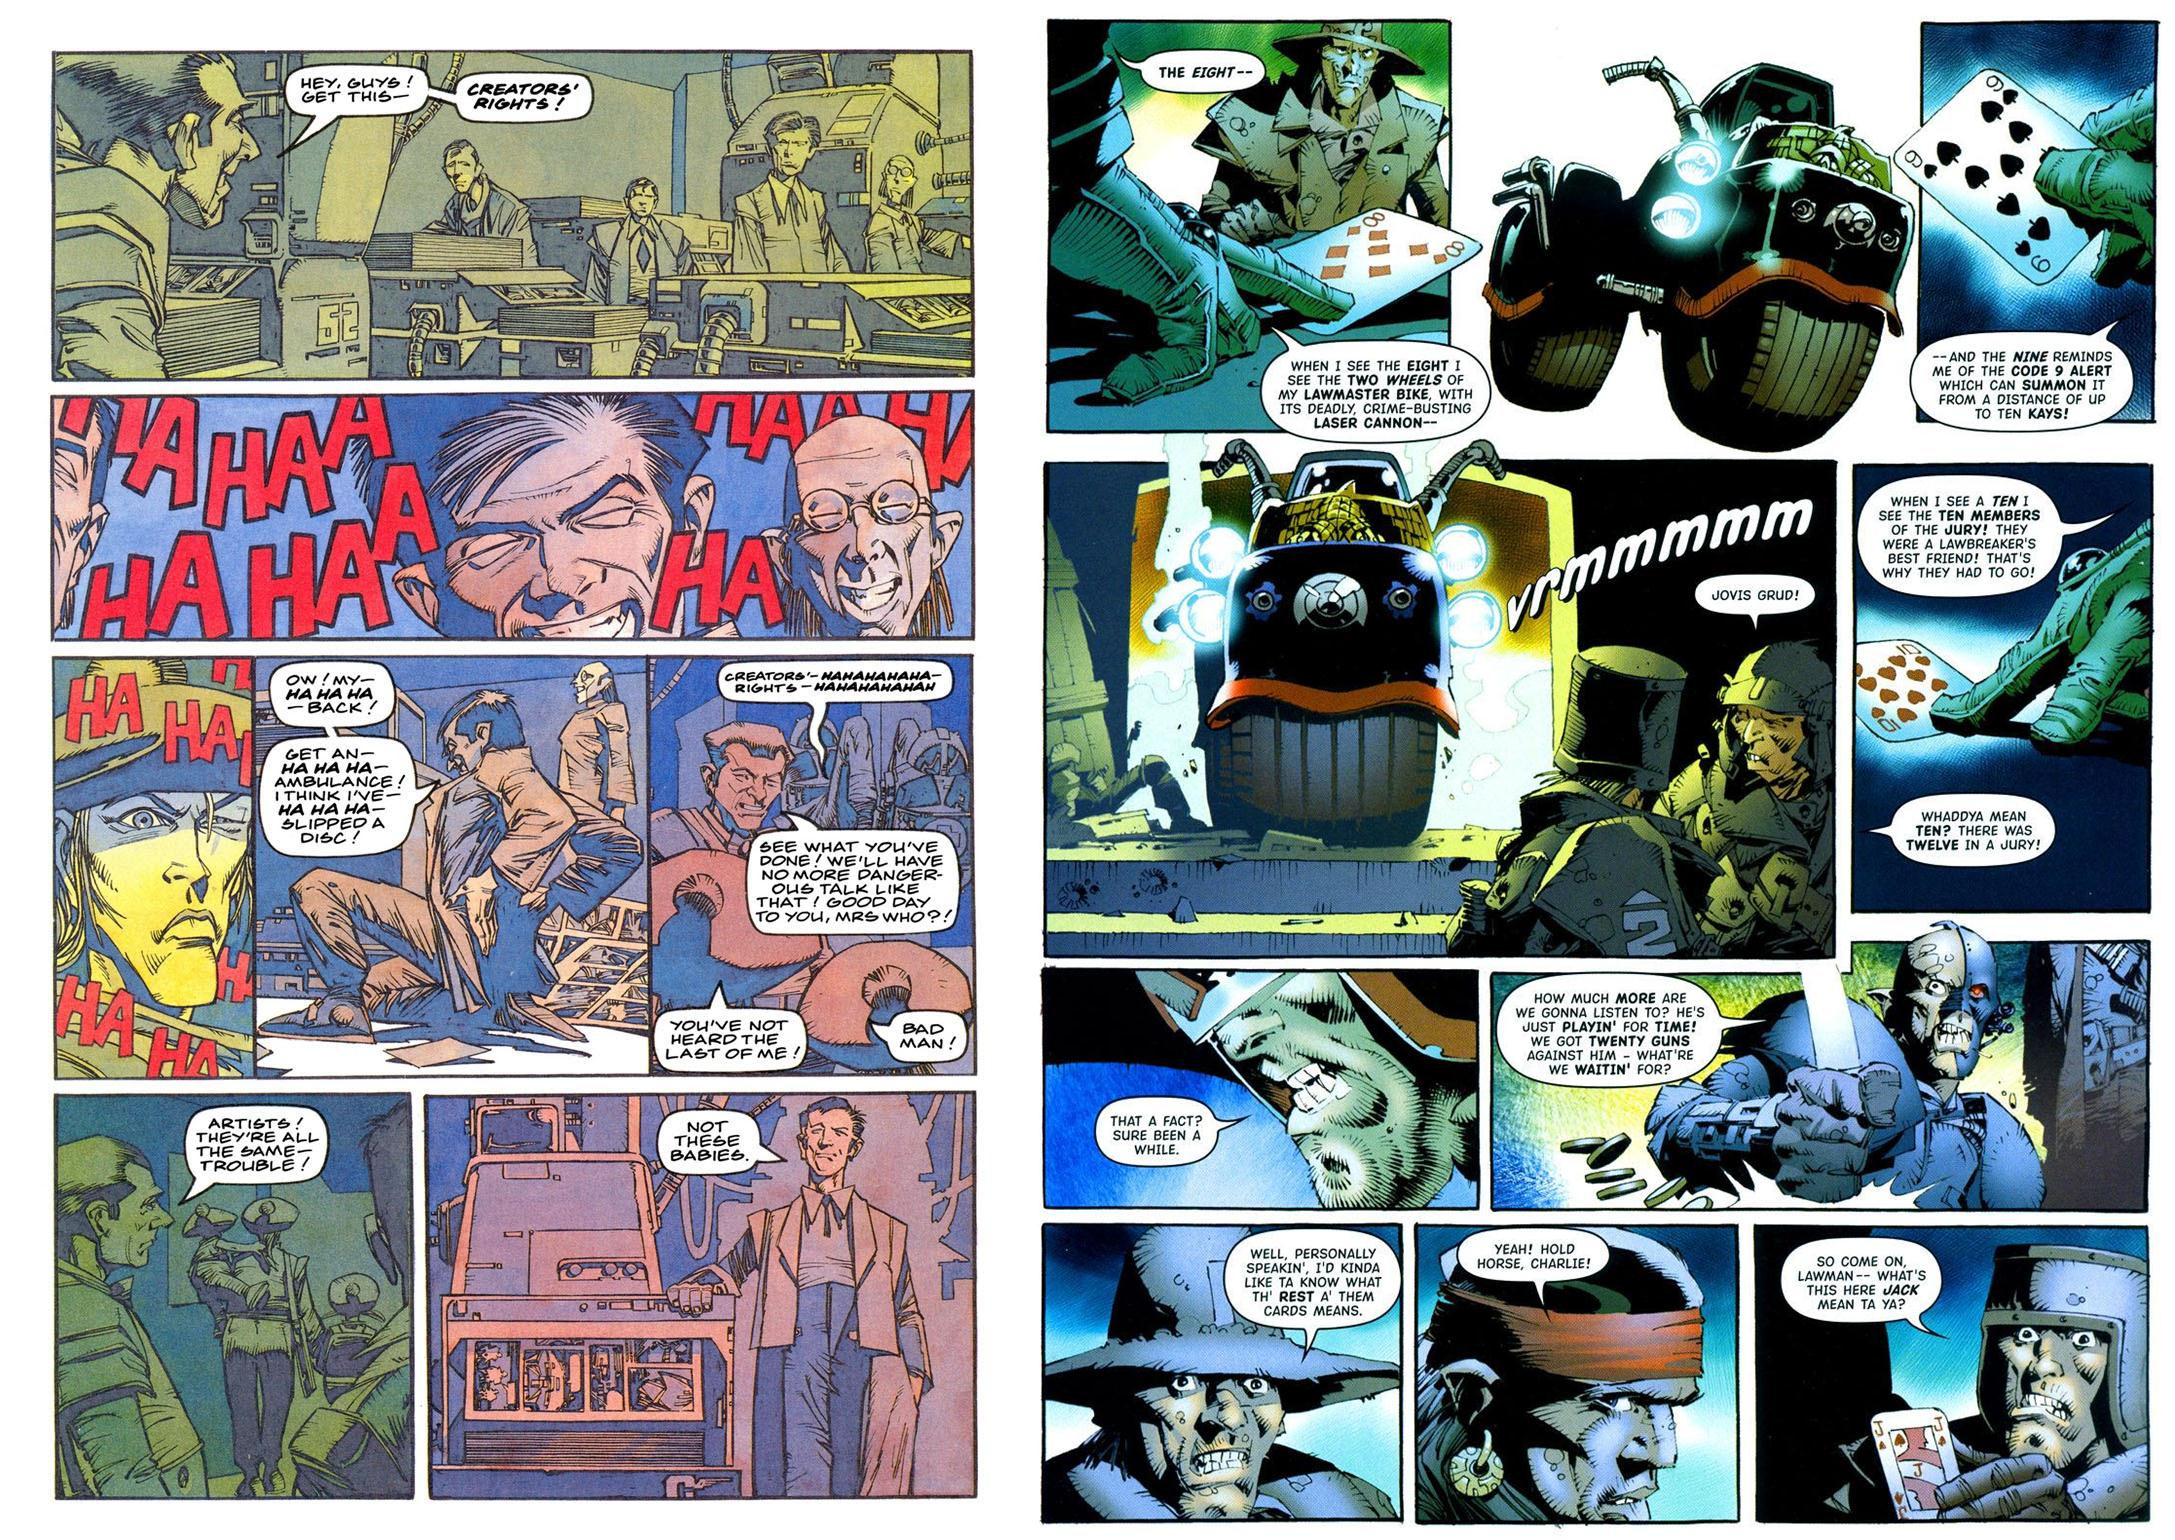 Judge Dredd The Art of Kenny Who review